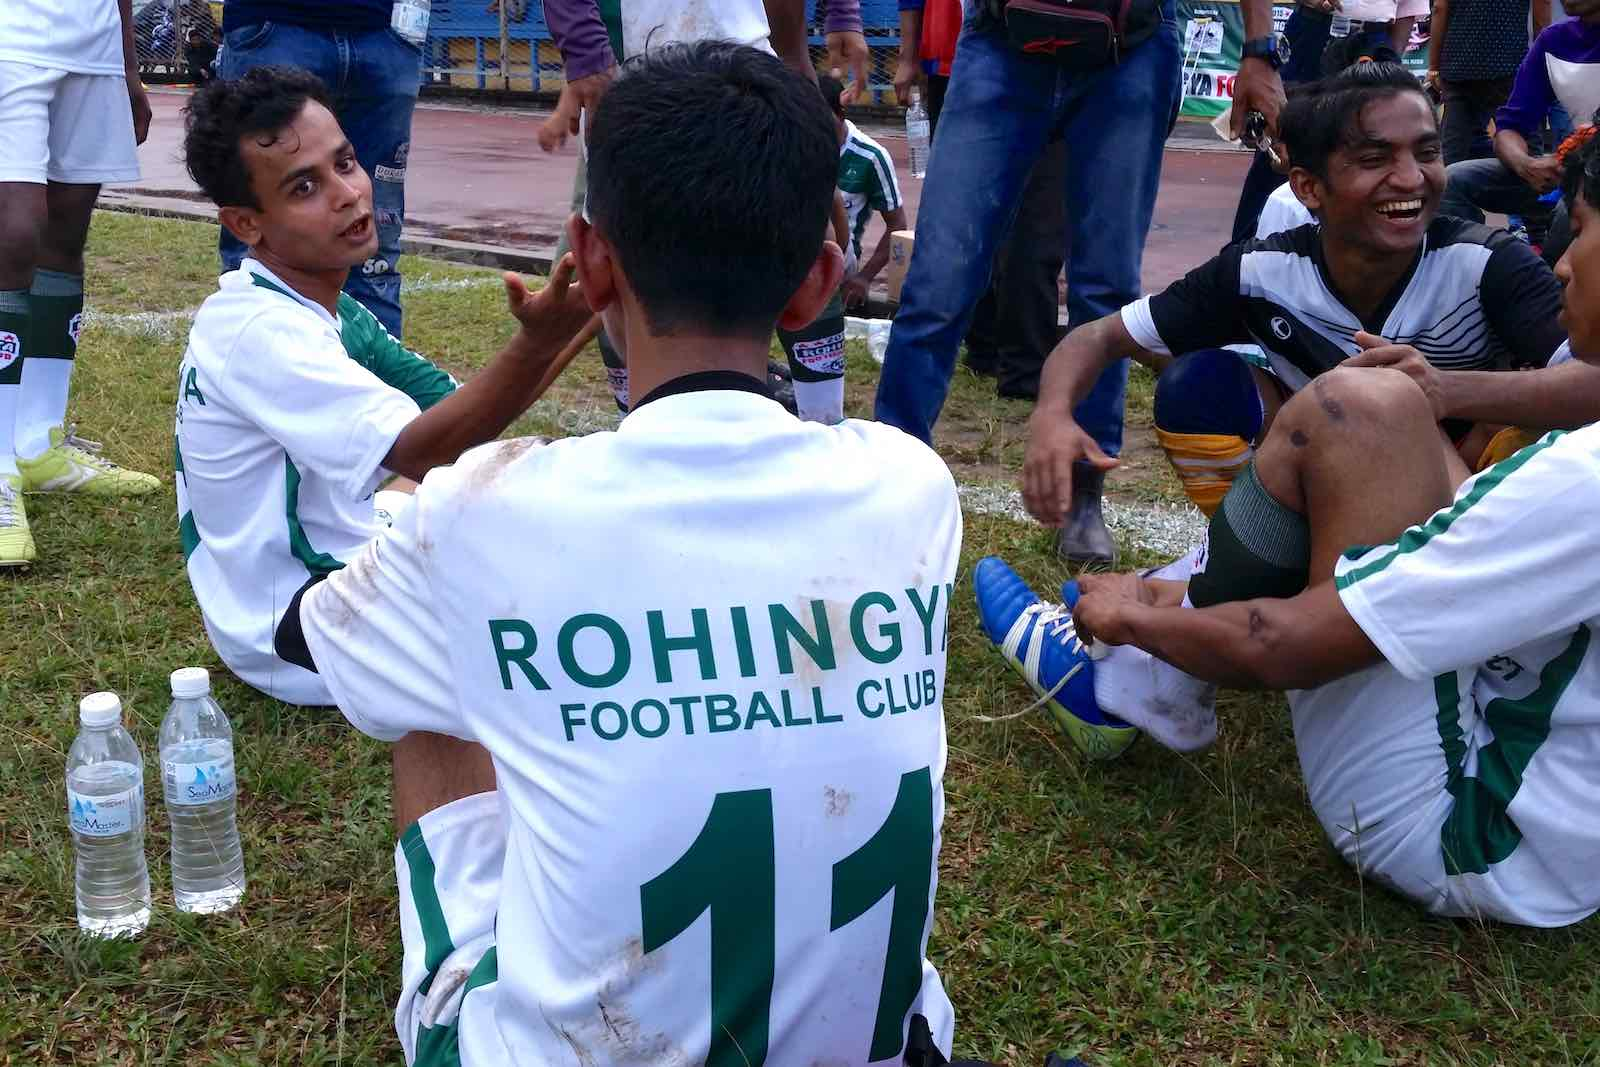 """The Kuala Lumpur–based Rohingya Football Club, made up of refugees and migrants fleeing persecution in Myanmar, is recognised as the """"Rohingya National Football Team"""" (Photos by James Rose)"""